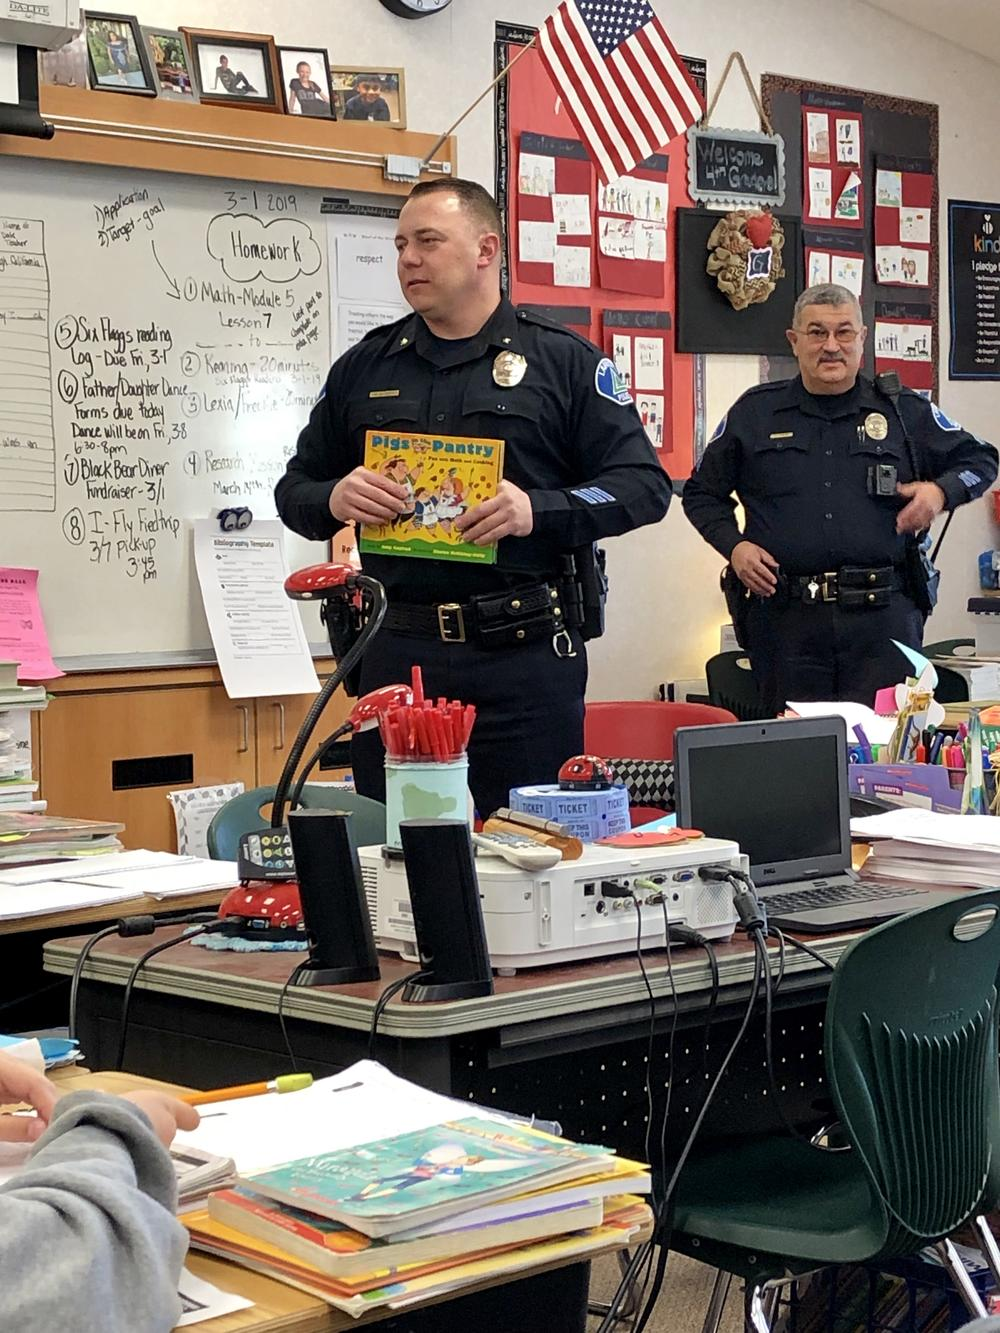 Chief of Police Alldritt reading on Literature Day